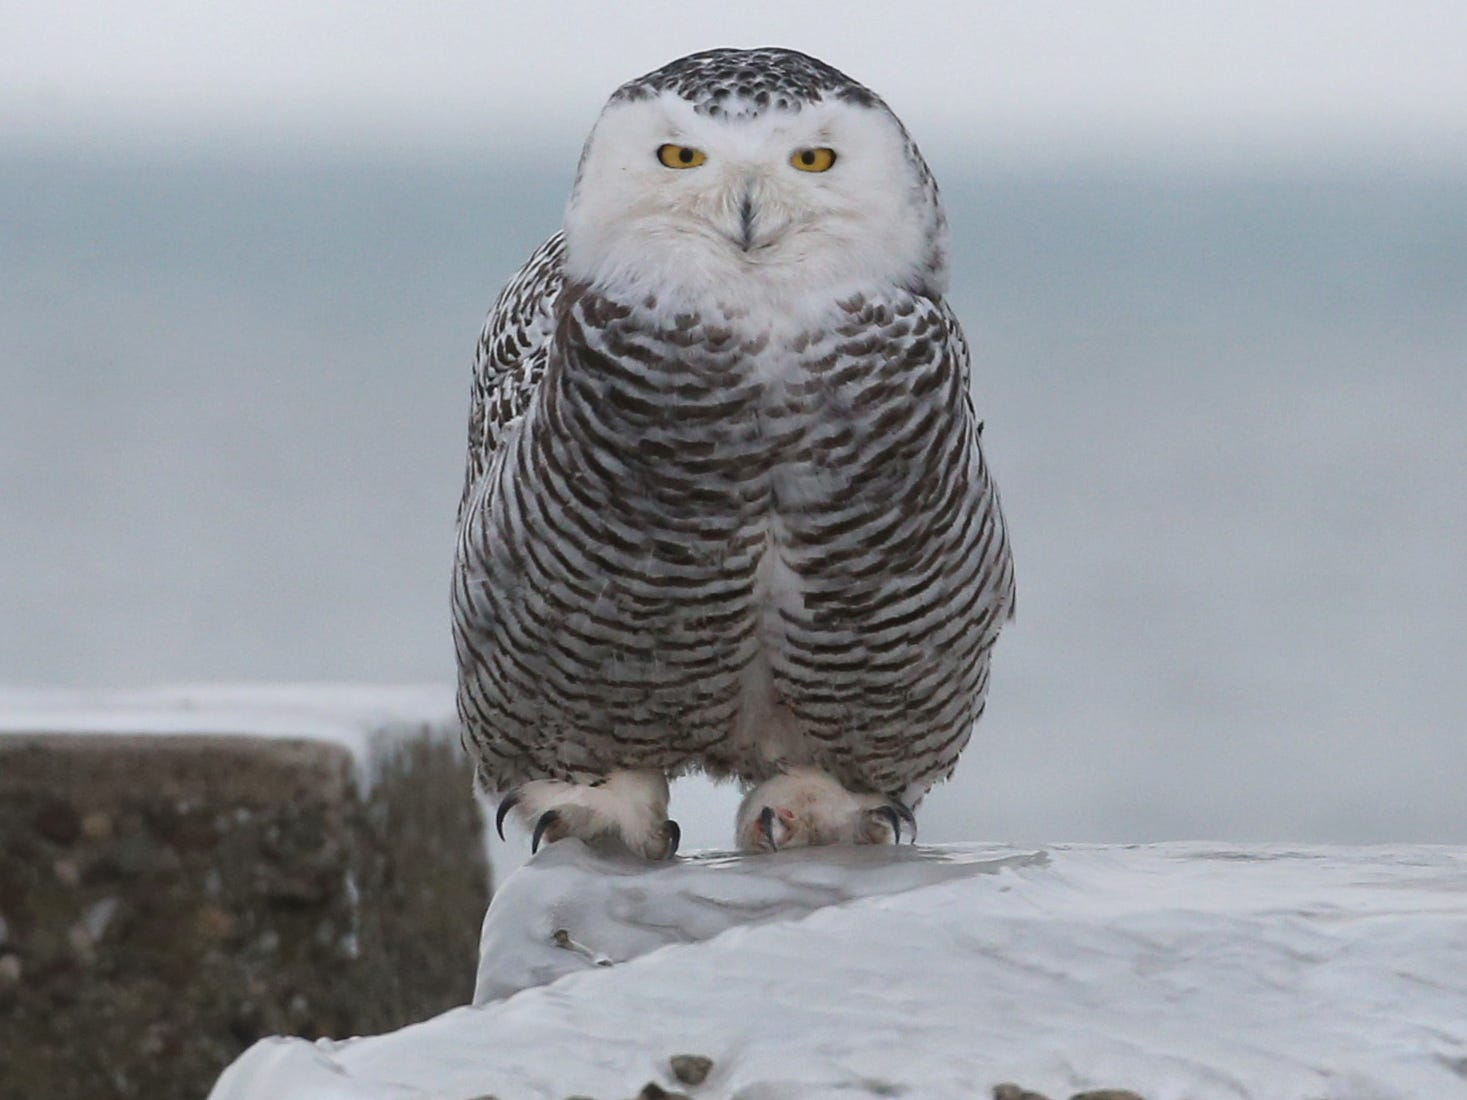 THE PHOTO: A snowy owl looks for more lunch at the end of the frozen Summerville Pier in Irondequoit Tuesday, Jan. 15. FROM SHAWN: I was out looking for photos for our D&C Instagram account and swung by the Summerville Pier. From the shore end of the pier, I could see a small lump out at the other end, so I put on Yaktrax as the pier was covered over in ice and headed out to see if it really was a snowy owl and if I could get a photo. For me, the key to getting this was patience - I walked as slow as I could so as not to scare the owl off, or stress it. I would take five steps, stop, another five, stop, wait a minute, then five more, so on down the pier. About 30 minutes later I was maybe 50 yards away. I slowly kneeled to lessen my size to the owl, and took maybe 10 photos using a 100-400 lens with a 1.4 teleconverter.  I also cropped this image way in to this tight version.  When the owl made a little shoulder twitch, that was my sign to leave. I slowly crouched up, then backed away down the pier. I don't need to make the owl fly off to make a meaningful photo. I don't want to stress it, or force it off a meal or from this spot it clearly chose to hunt from.  Patience and respect to me are pretty important with photographing wildlife.